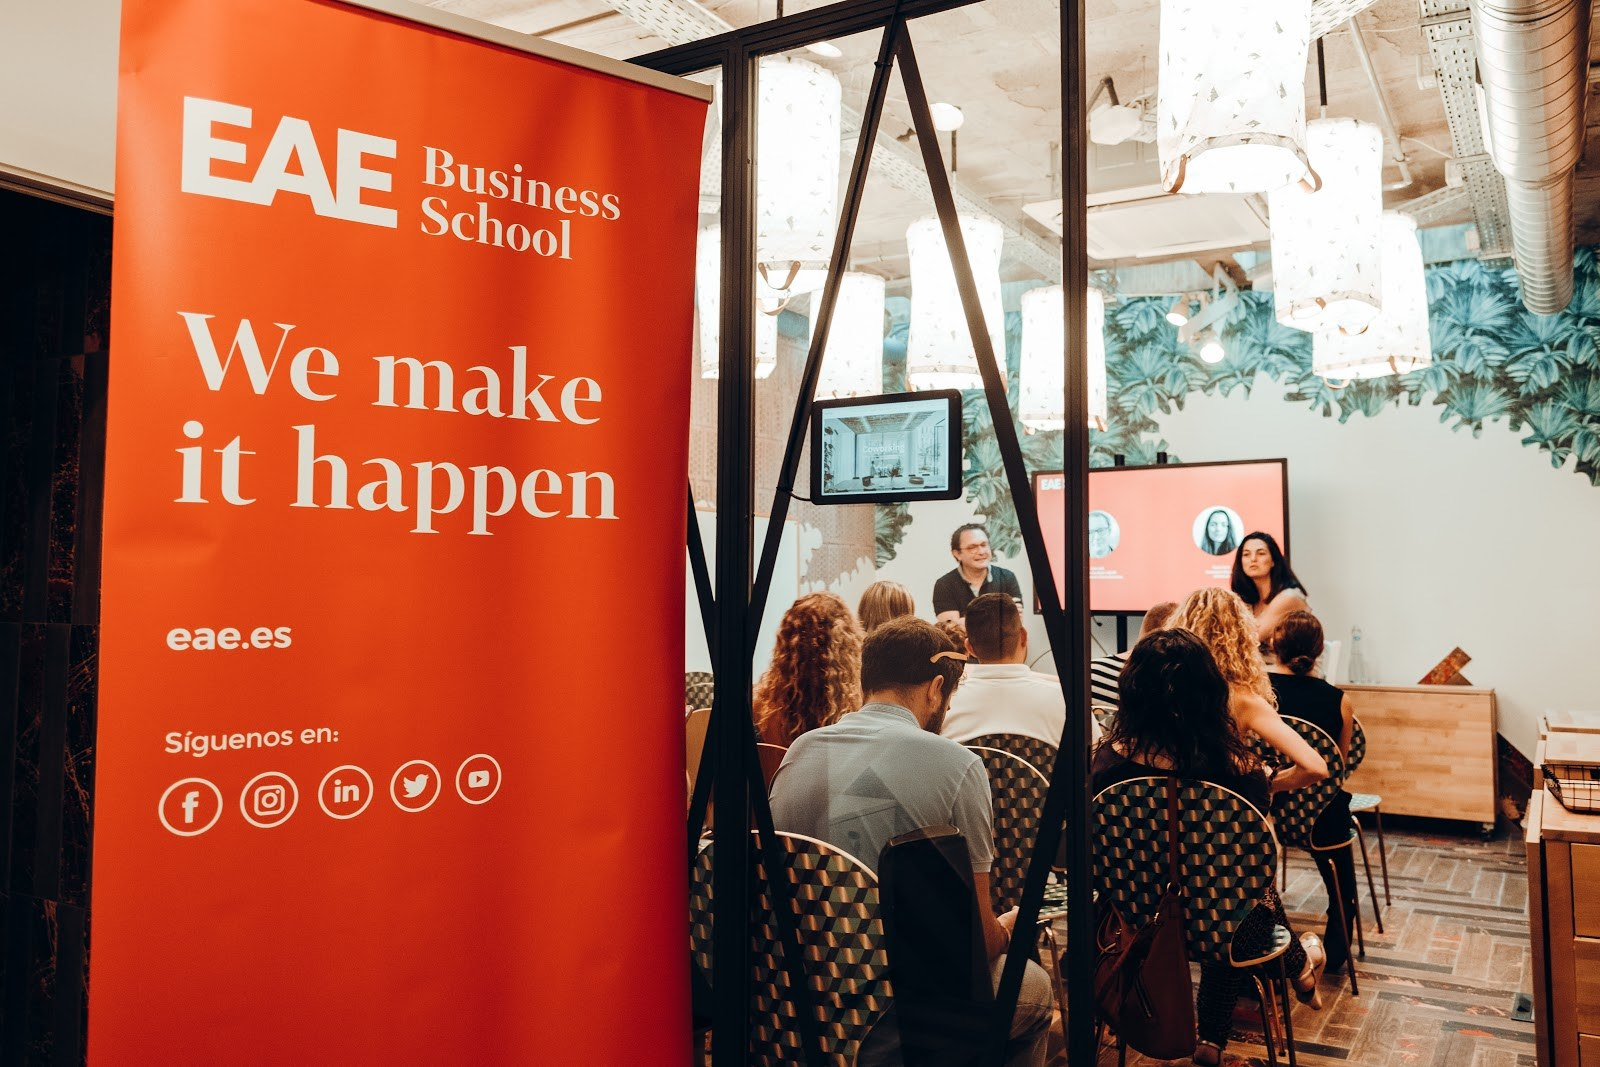 Evento de EAE Business School